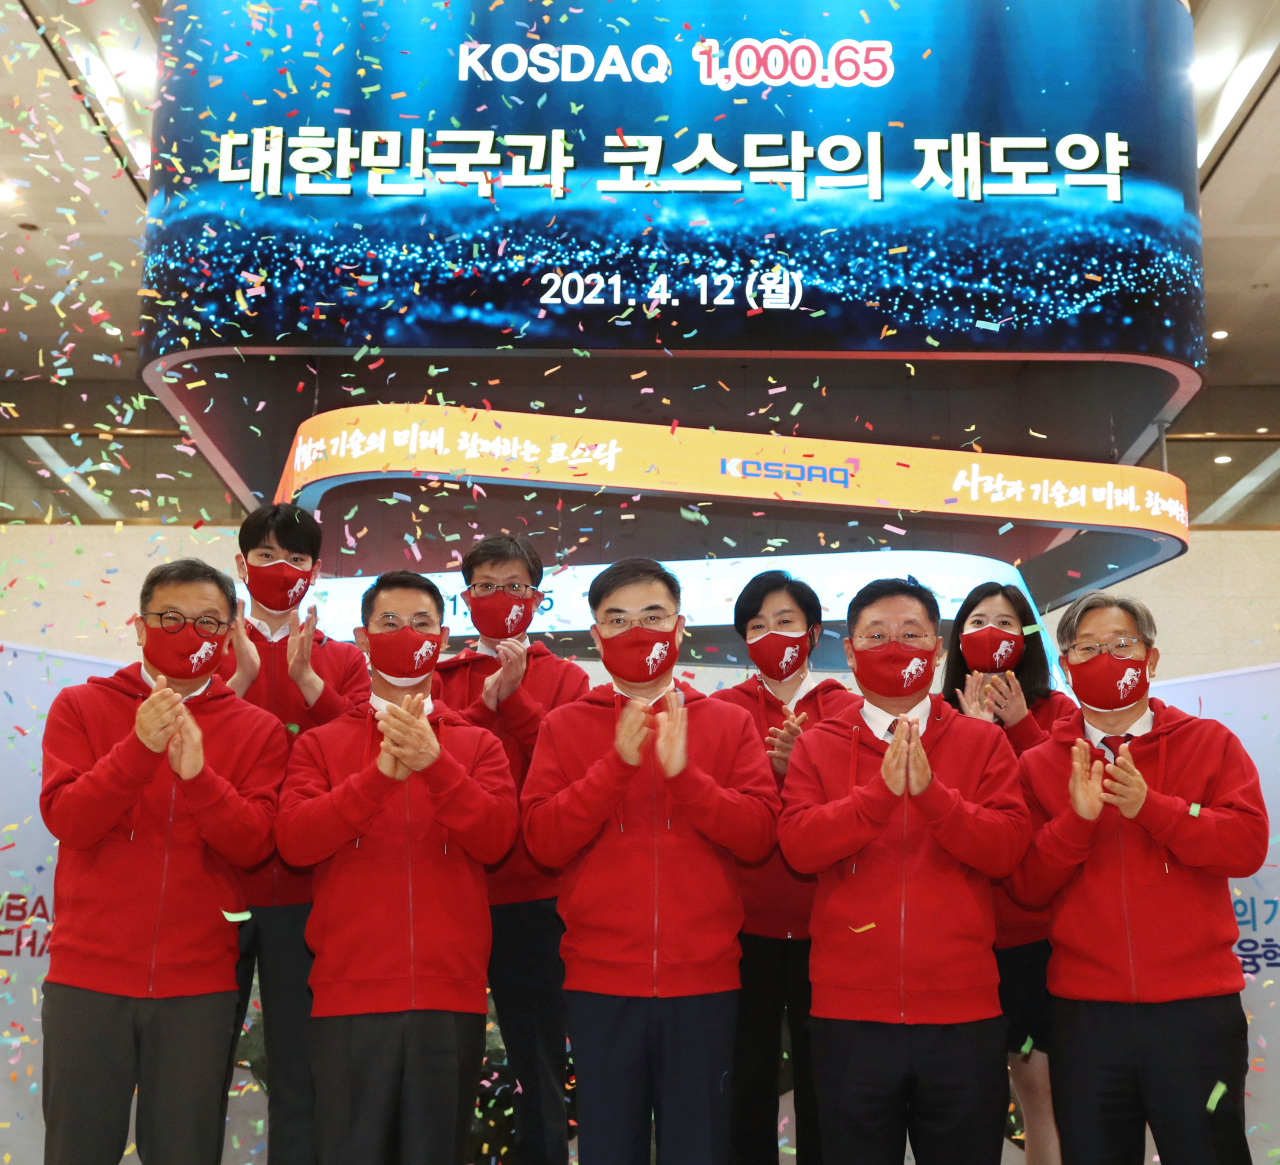 Kosdaq Listed Companies Association Chairman Chang Kyeong-ho (front row, second from left), Korea Exchange Chairman Sohn Byung-doo (front row, center), Korea Financial Investment Association Chairman Na Jae-chul (front row, fourth from left) and officials from the market operator celebrate South Korea's tech-heavy Kosdaq's closing above 1,000 points for the first time since Sept. 2000 at Korea Exchange's Seoul office on Monday. (KRX)